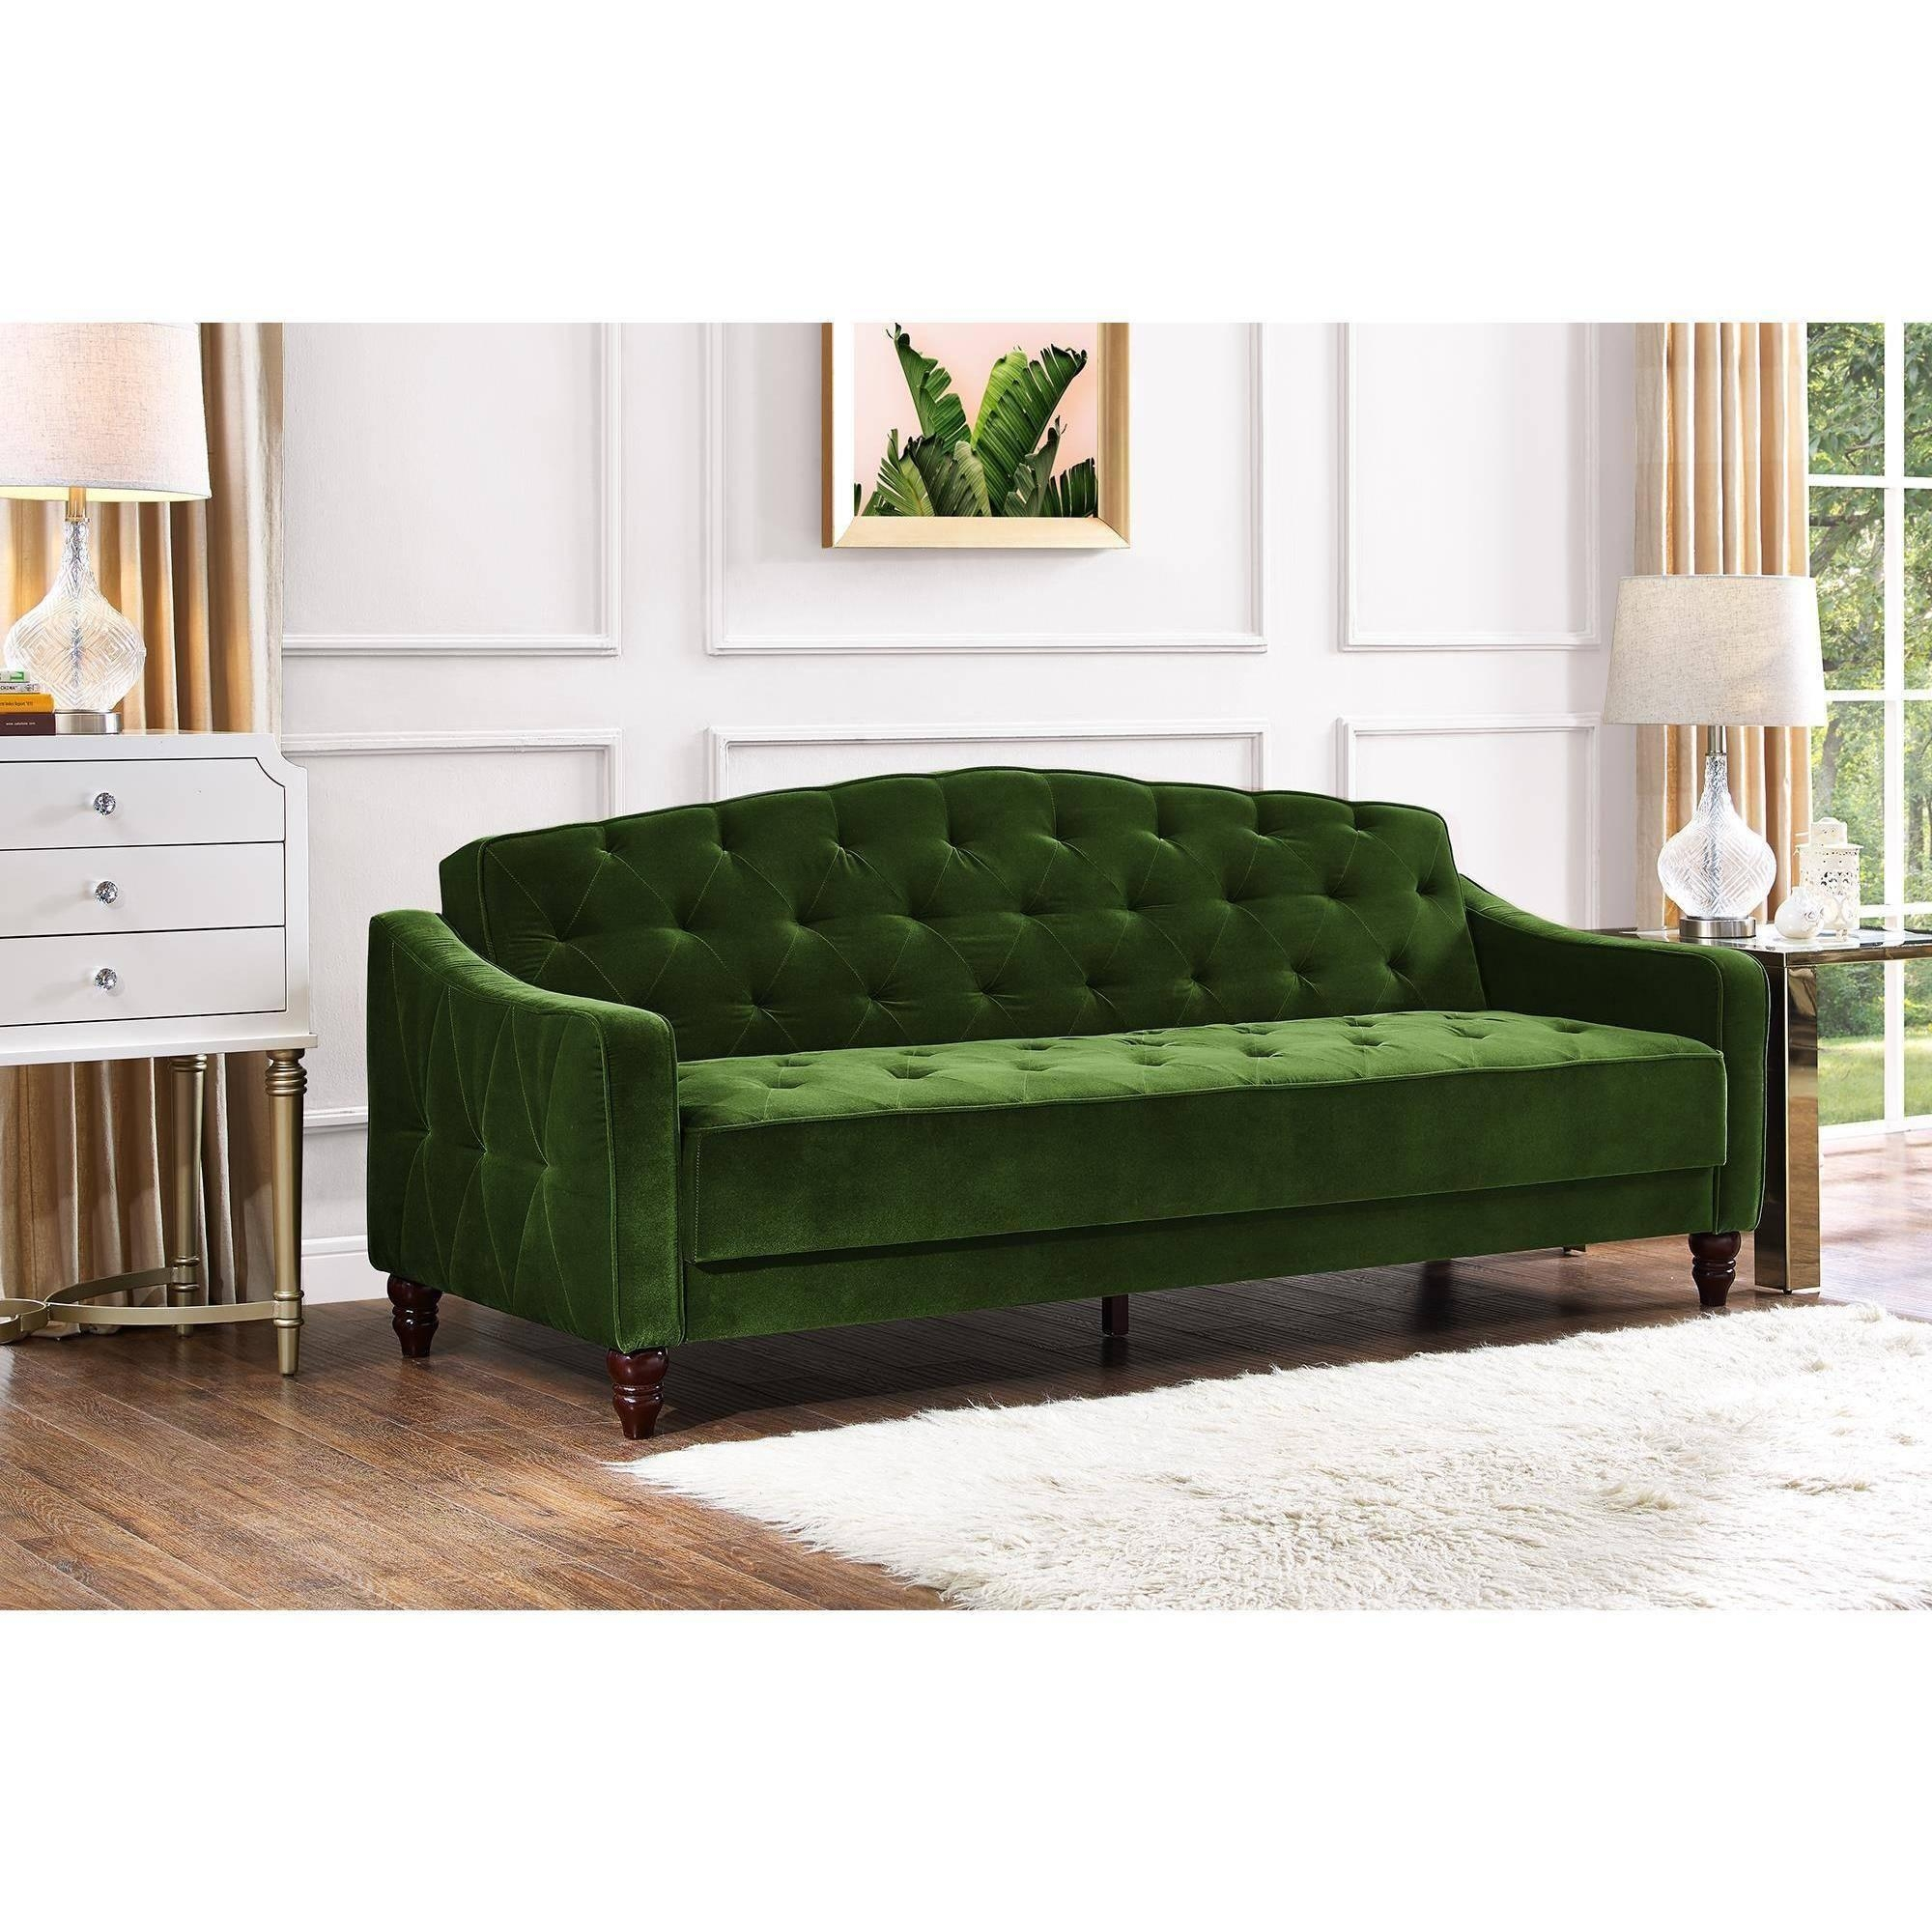 Novogratz Vintage Tufted Sofa Sleeper Ii, Multiple Colors Intended For Tufted Sleeper Sofas (Image 10 of 20)